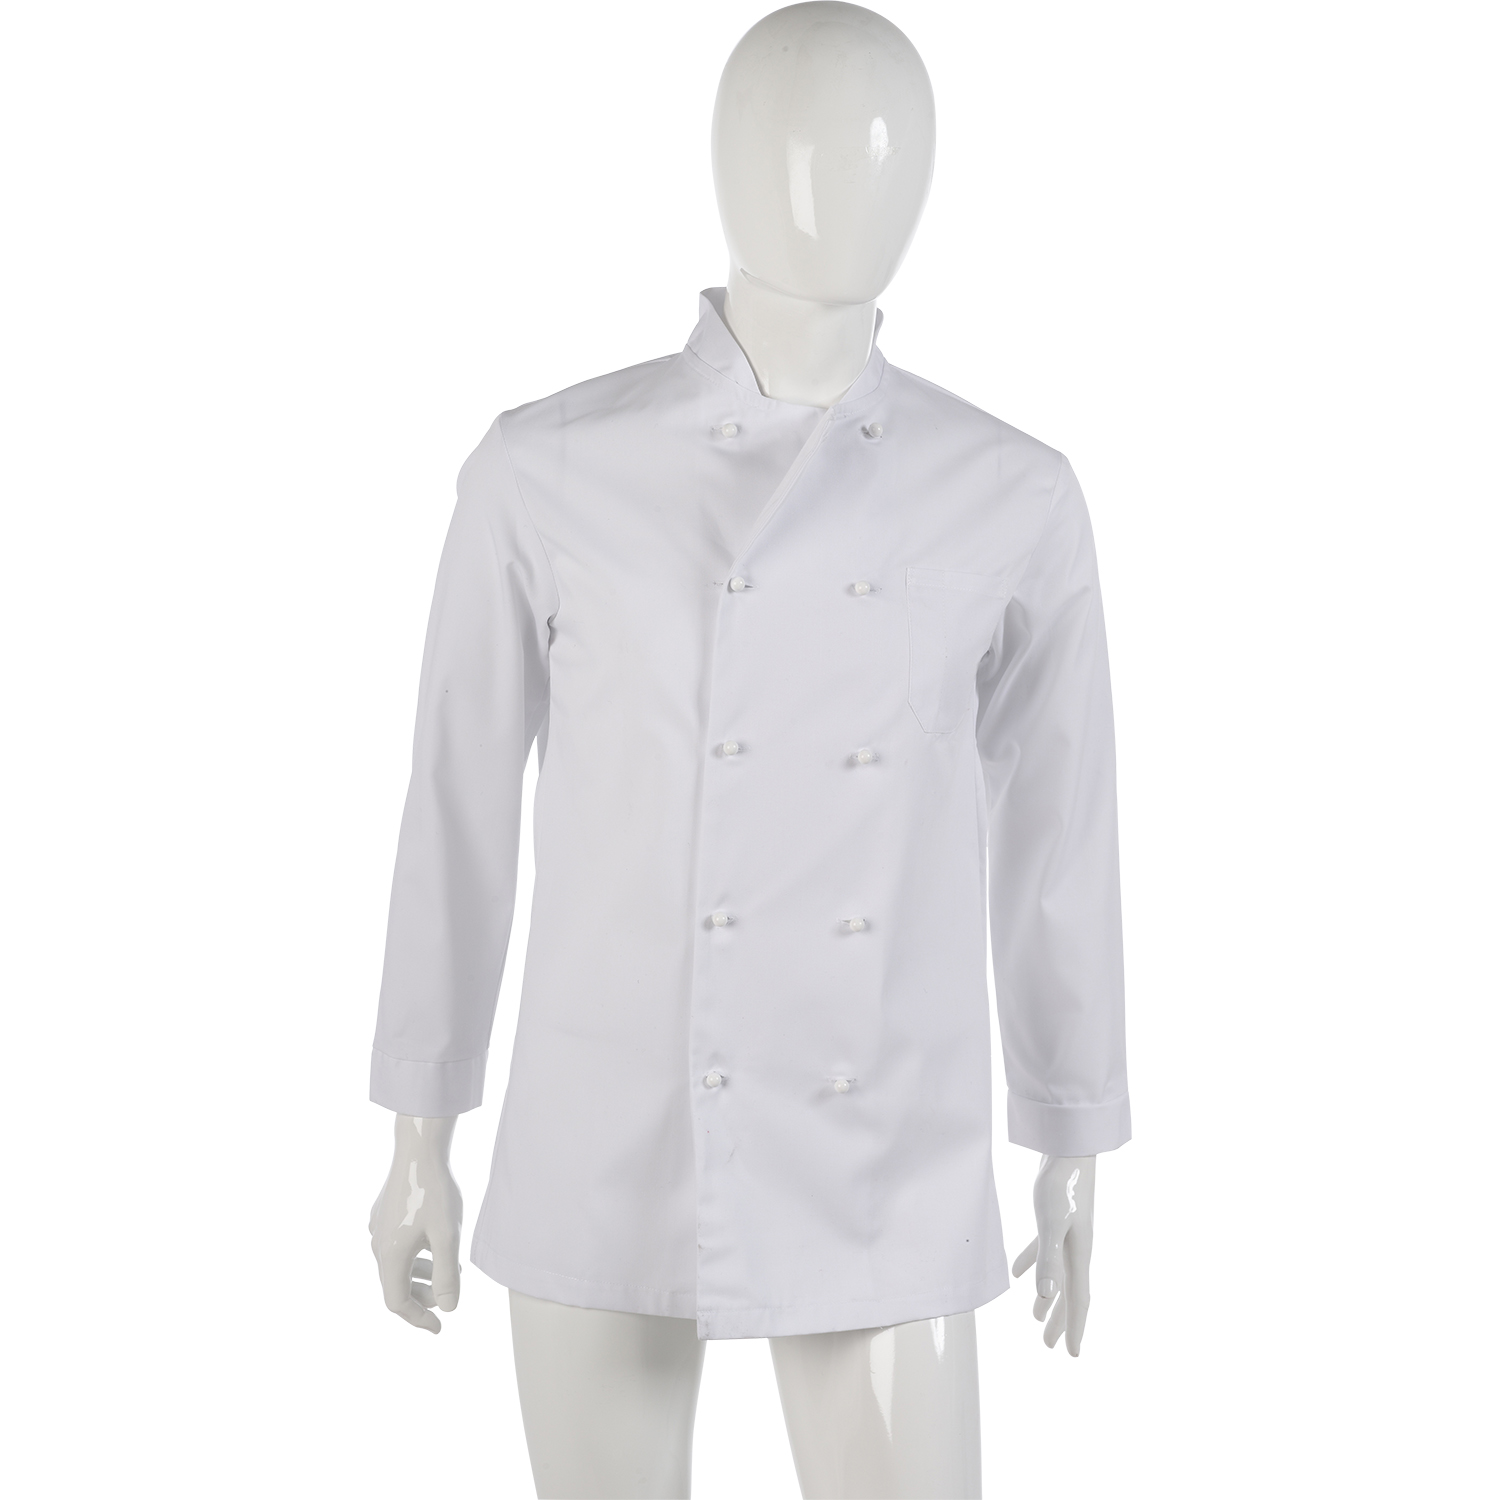 Long Sleeved Chefs Dentist Jacket Polycotton Healthcare Button Up Shirt White